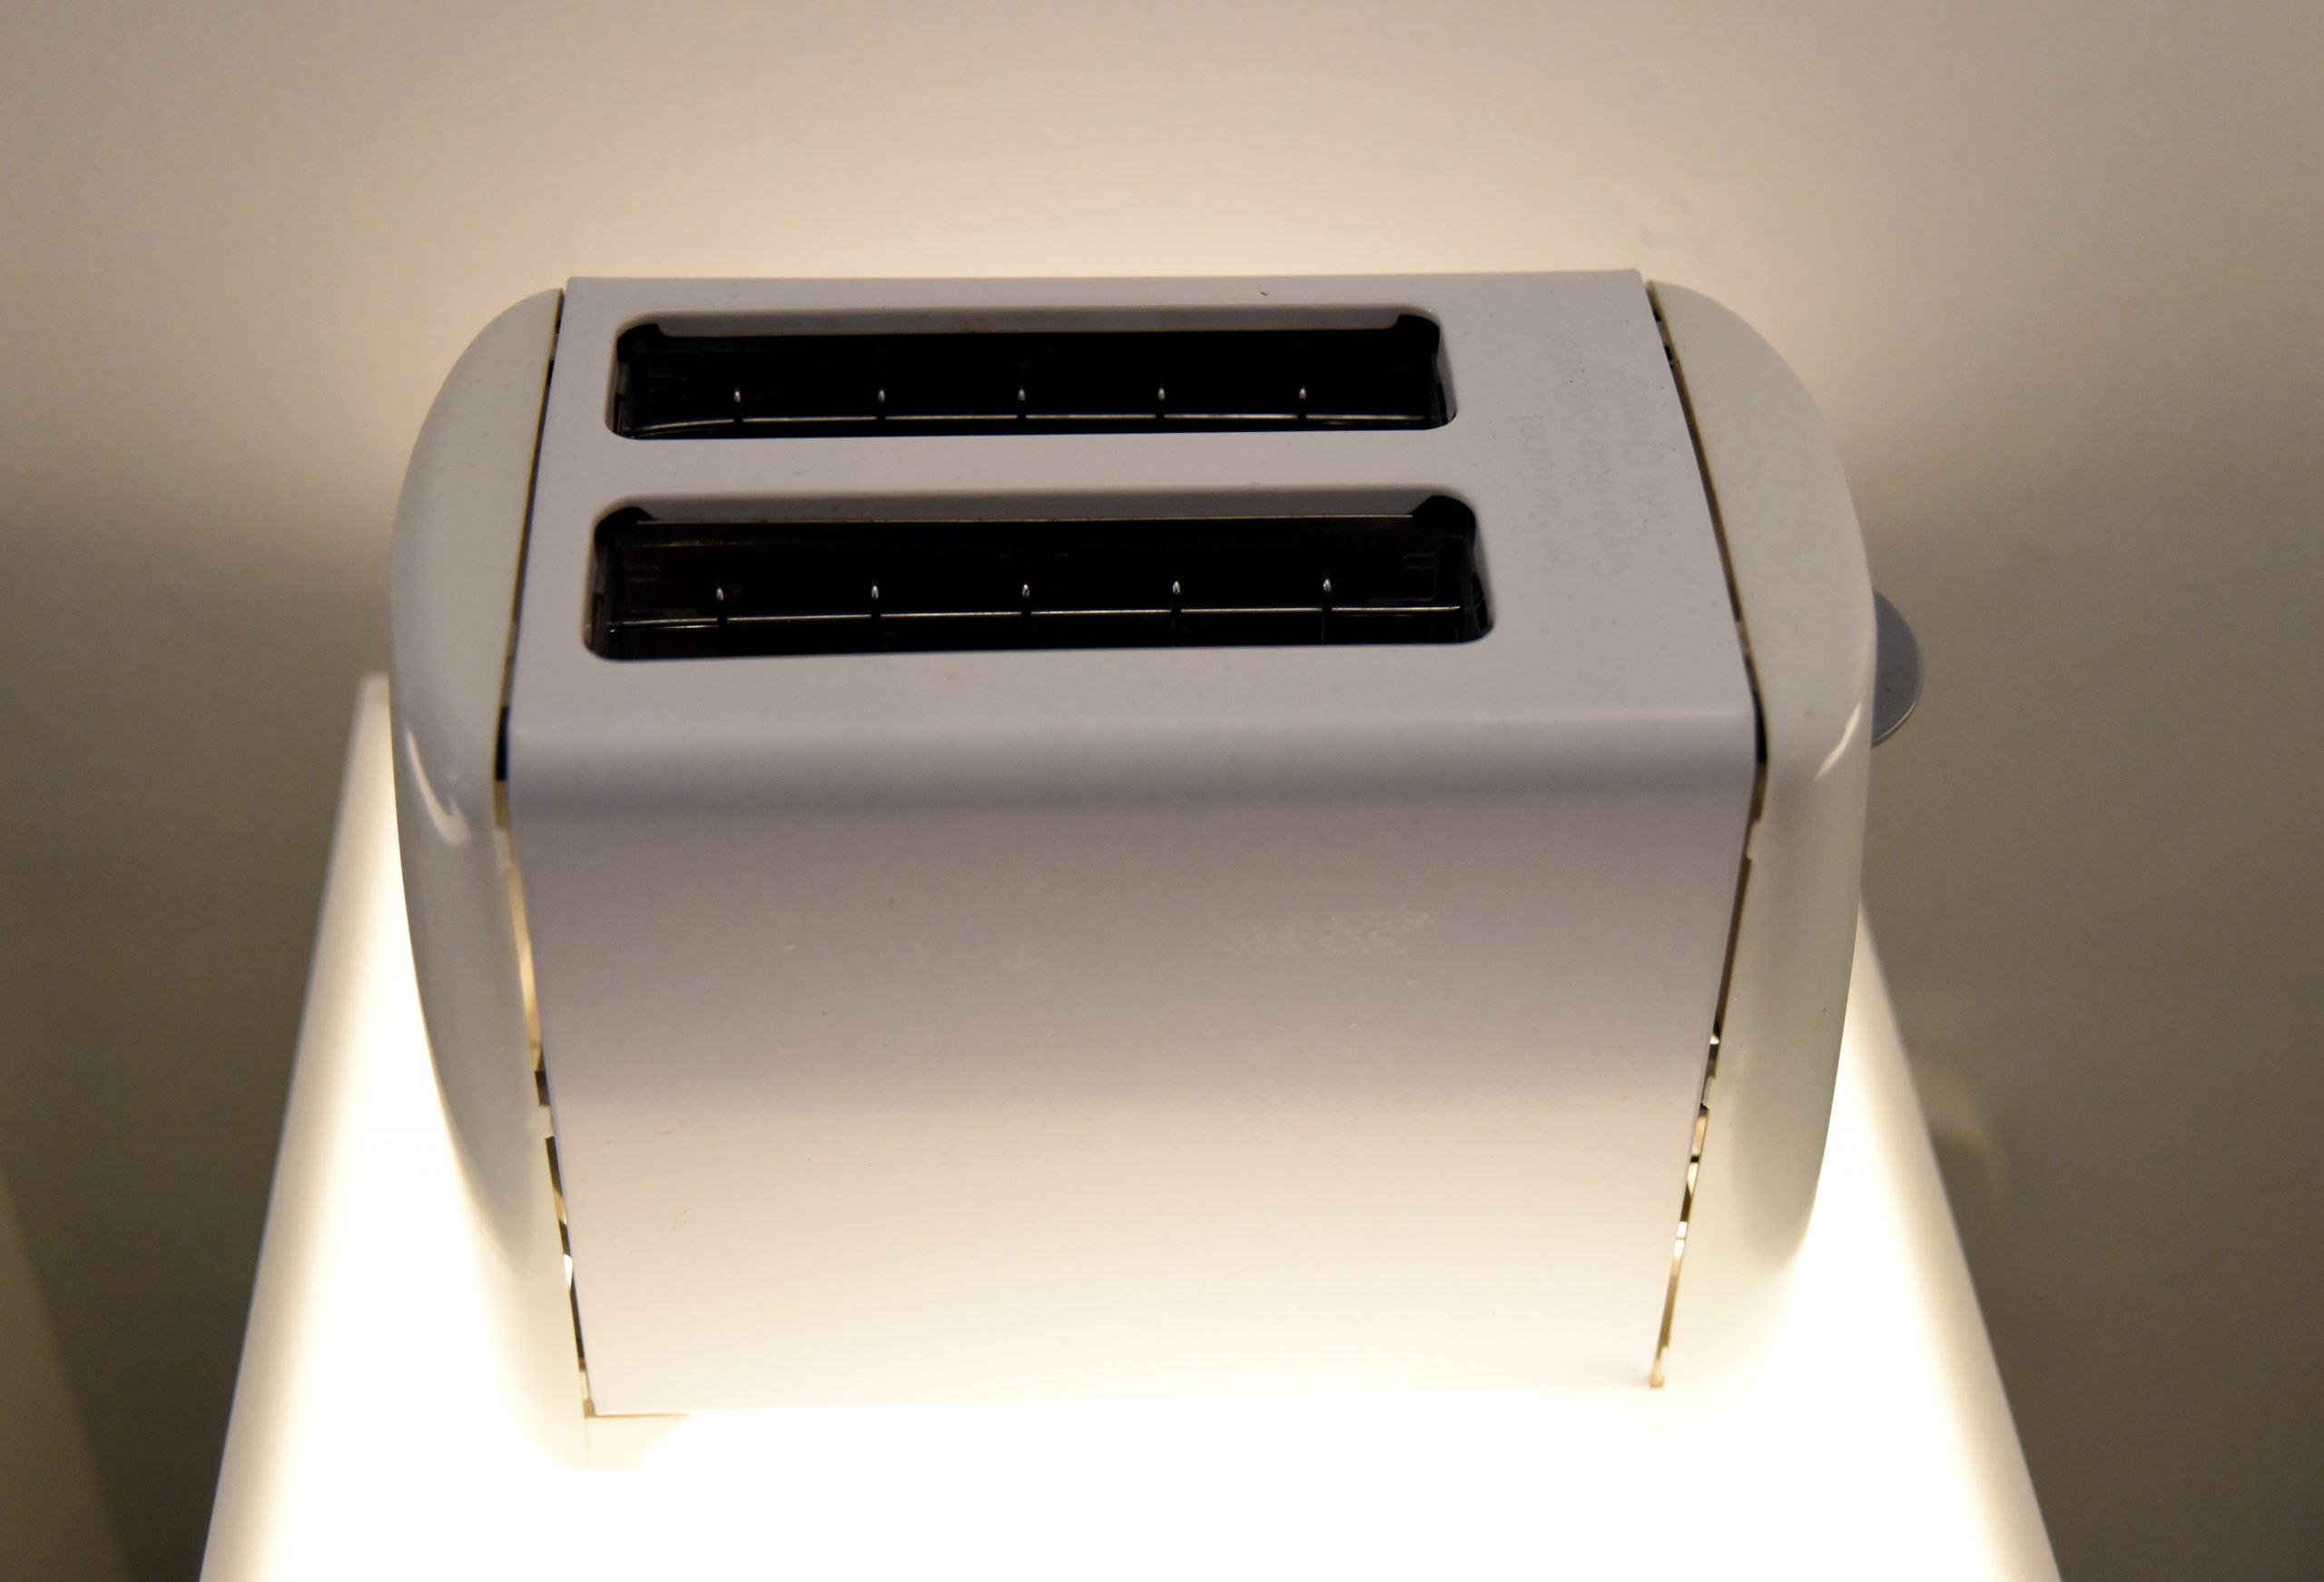 Gadgets that hate: why it seems your toaster is conspiring to ruin your life